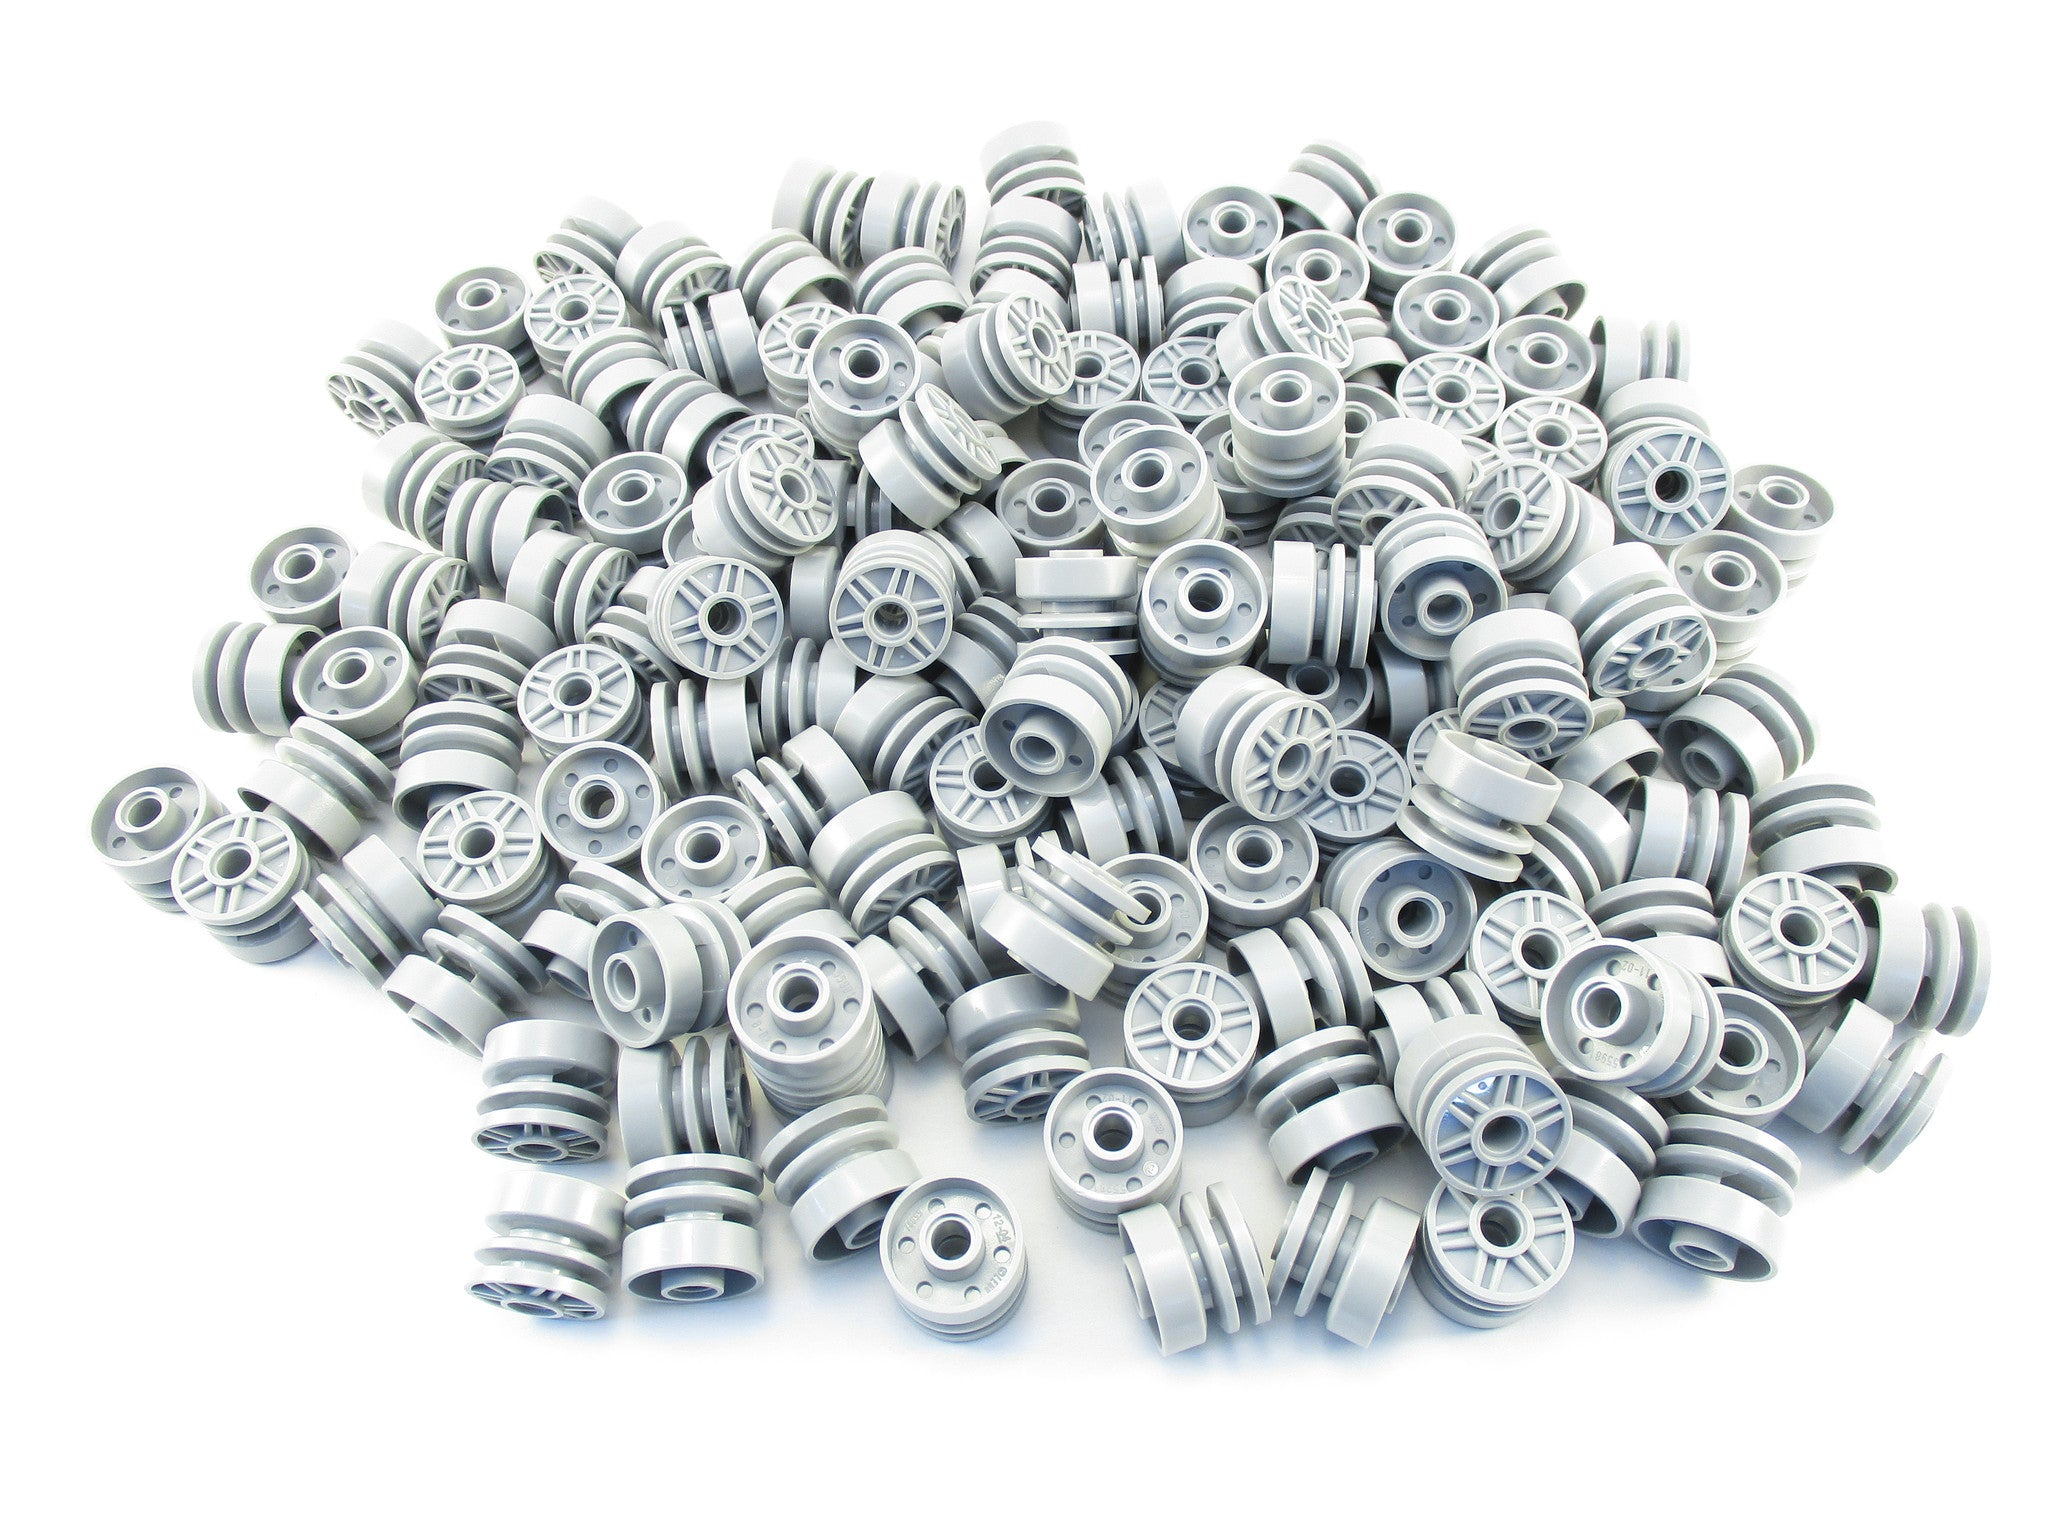 LEGO Light Bluish Gray Wheel 18mm D. x 14mm with Pin Hole Lot of 100 Parts Pieces 55981 Grey